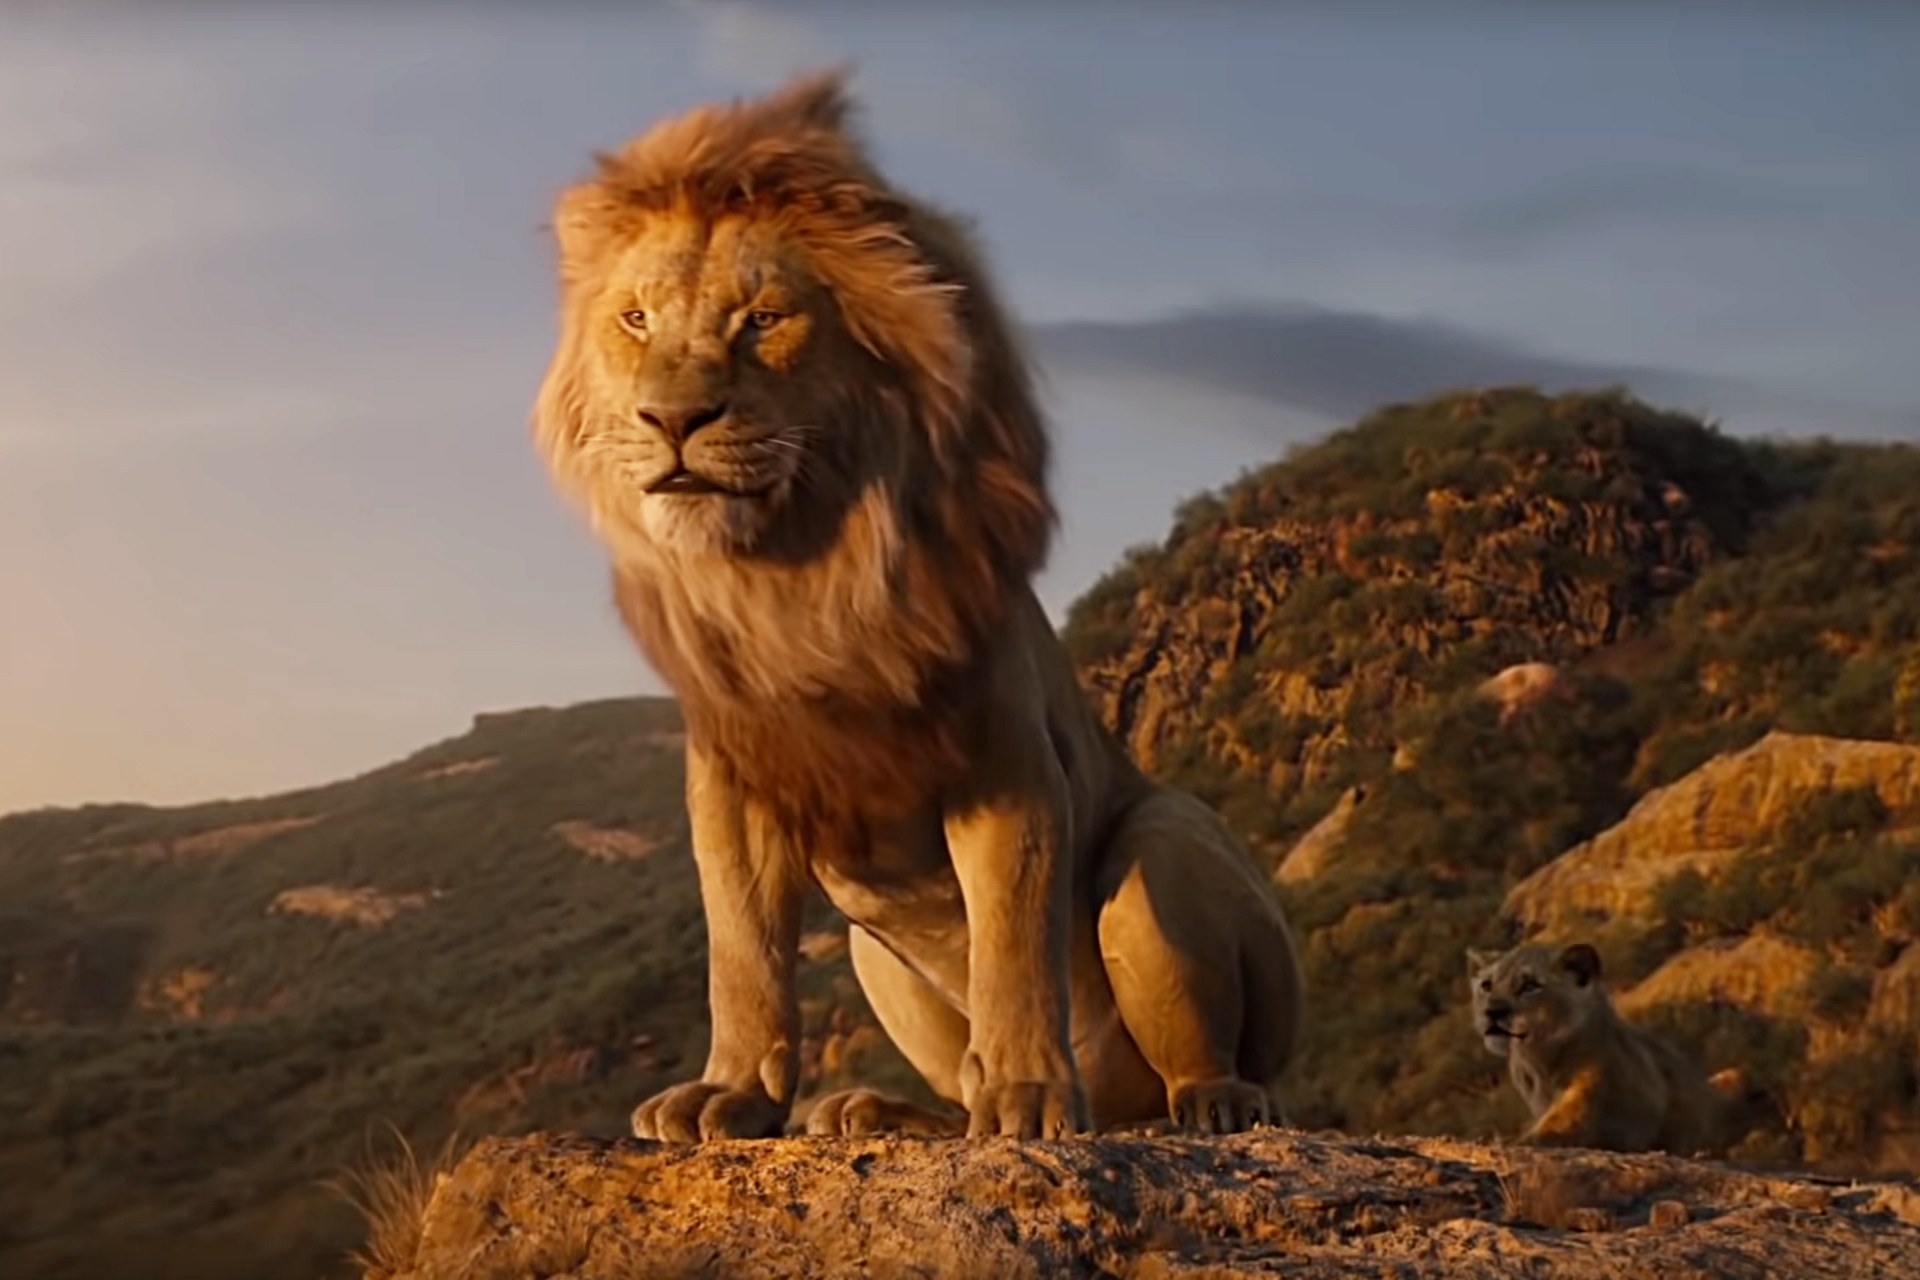 Father and son - Mufasa and Simba on Pride Rock in The Lion King (2019)